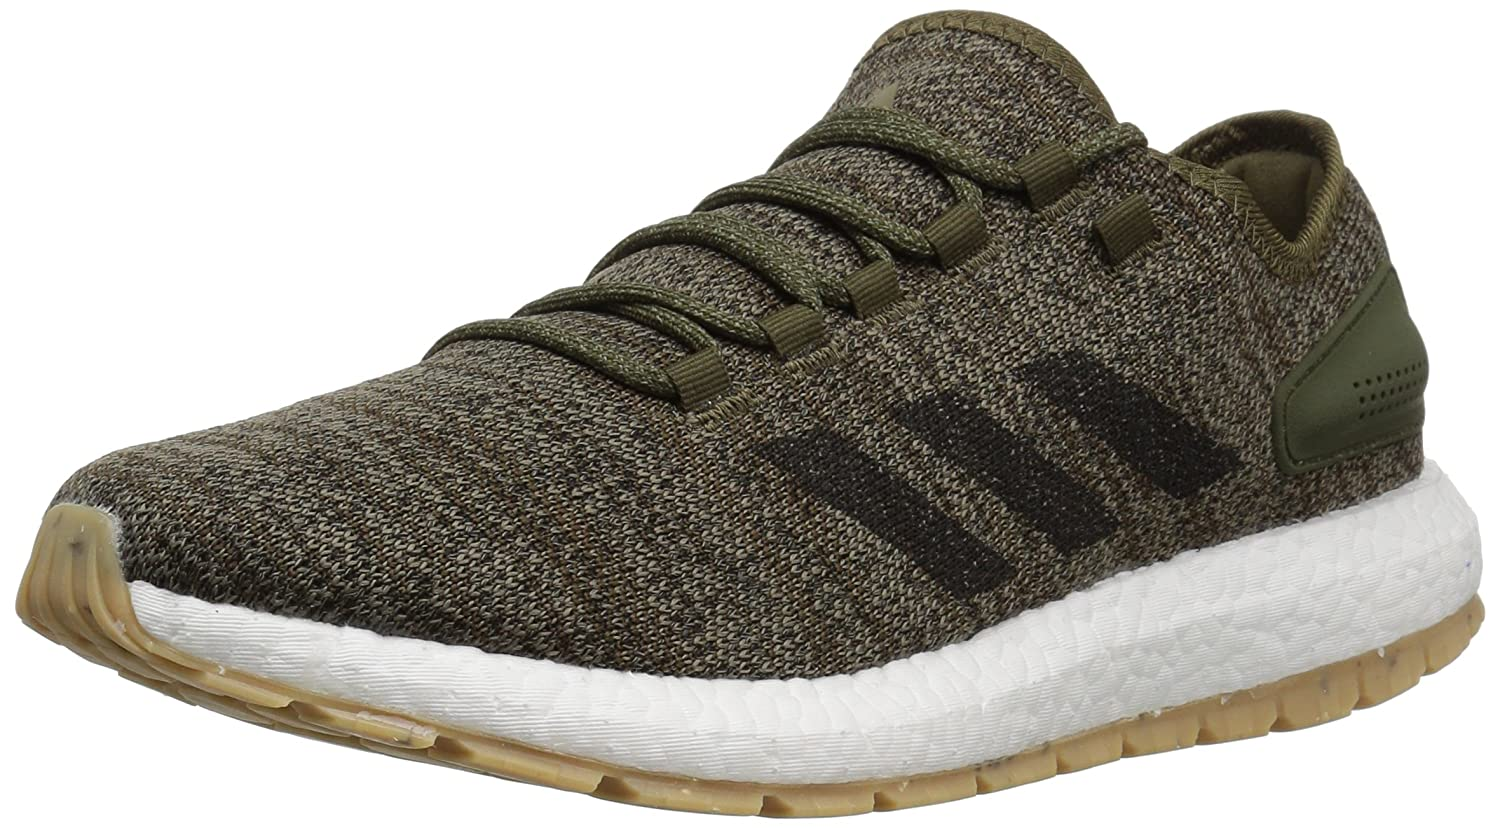 Trace Cargo noir Trace Olive adidasS80787 - Pureboost ATR Homme 44 EU